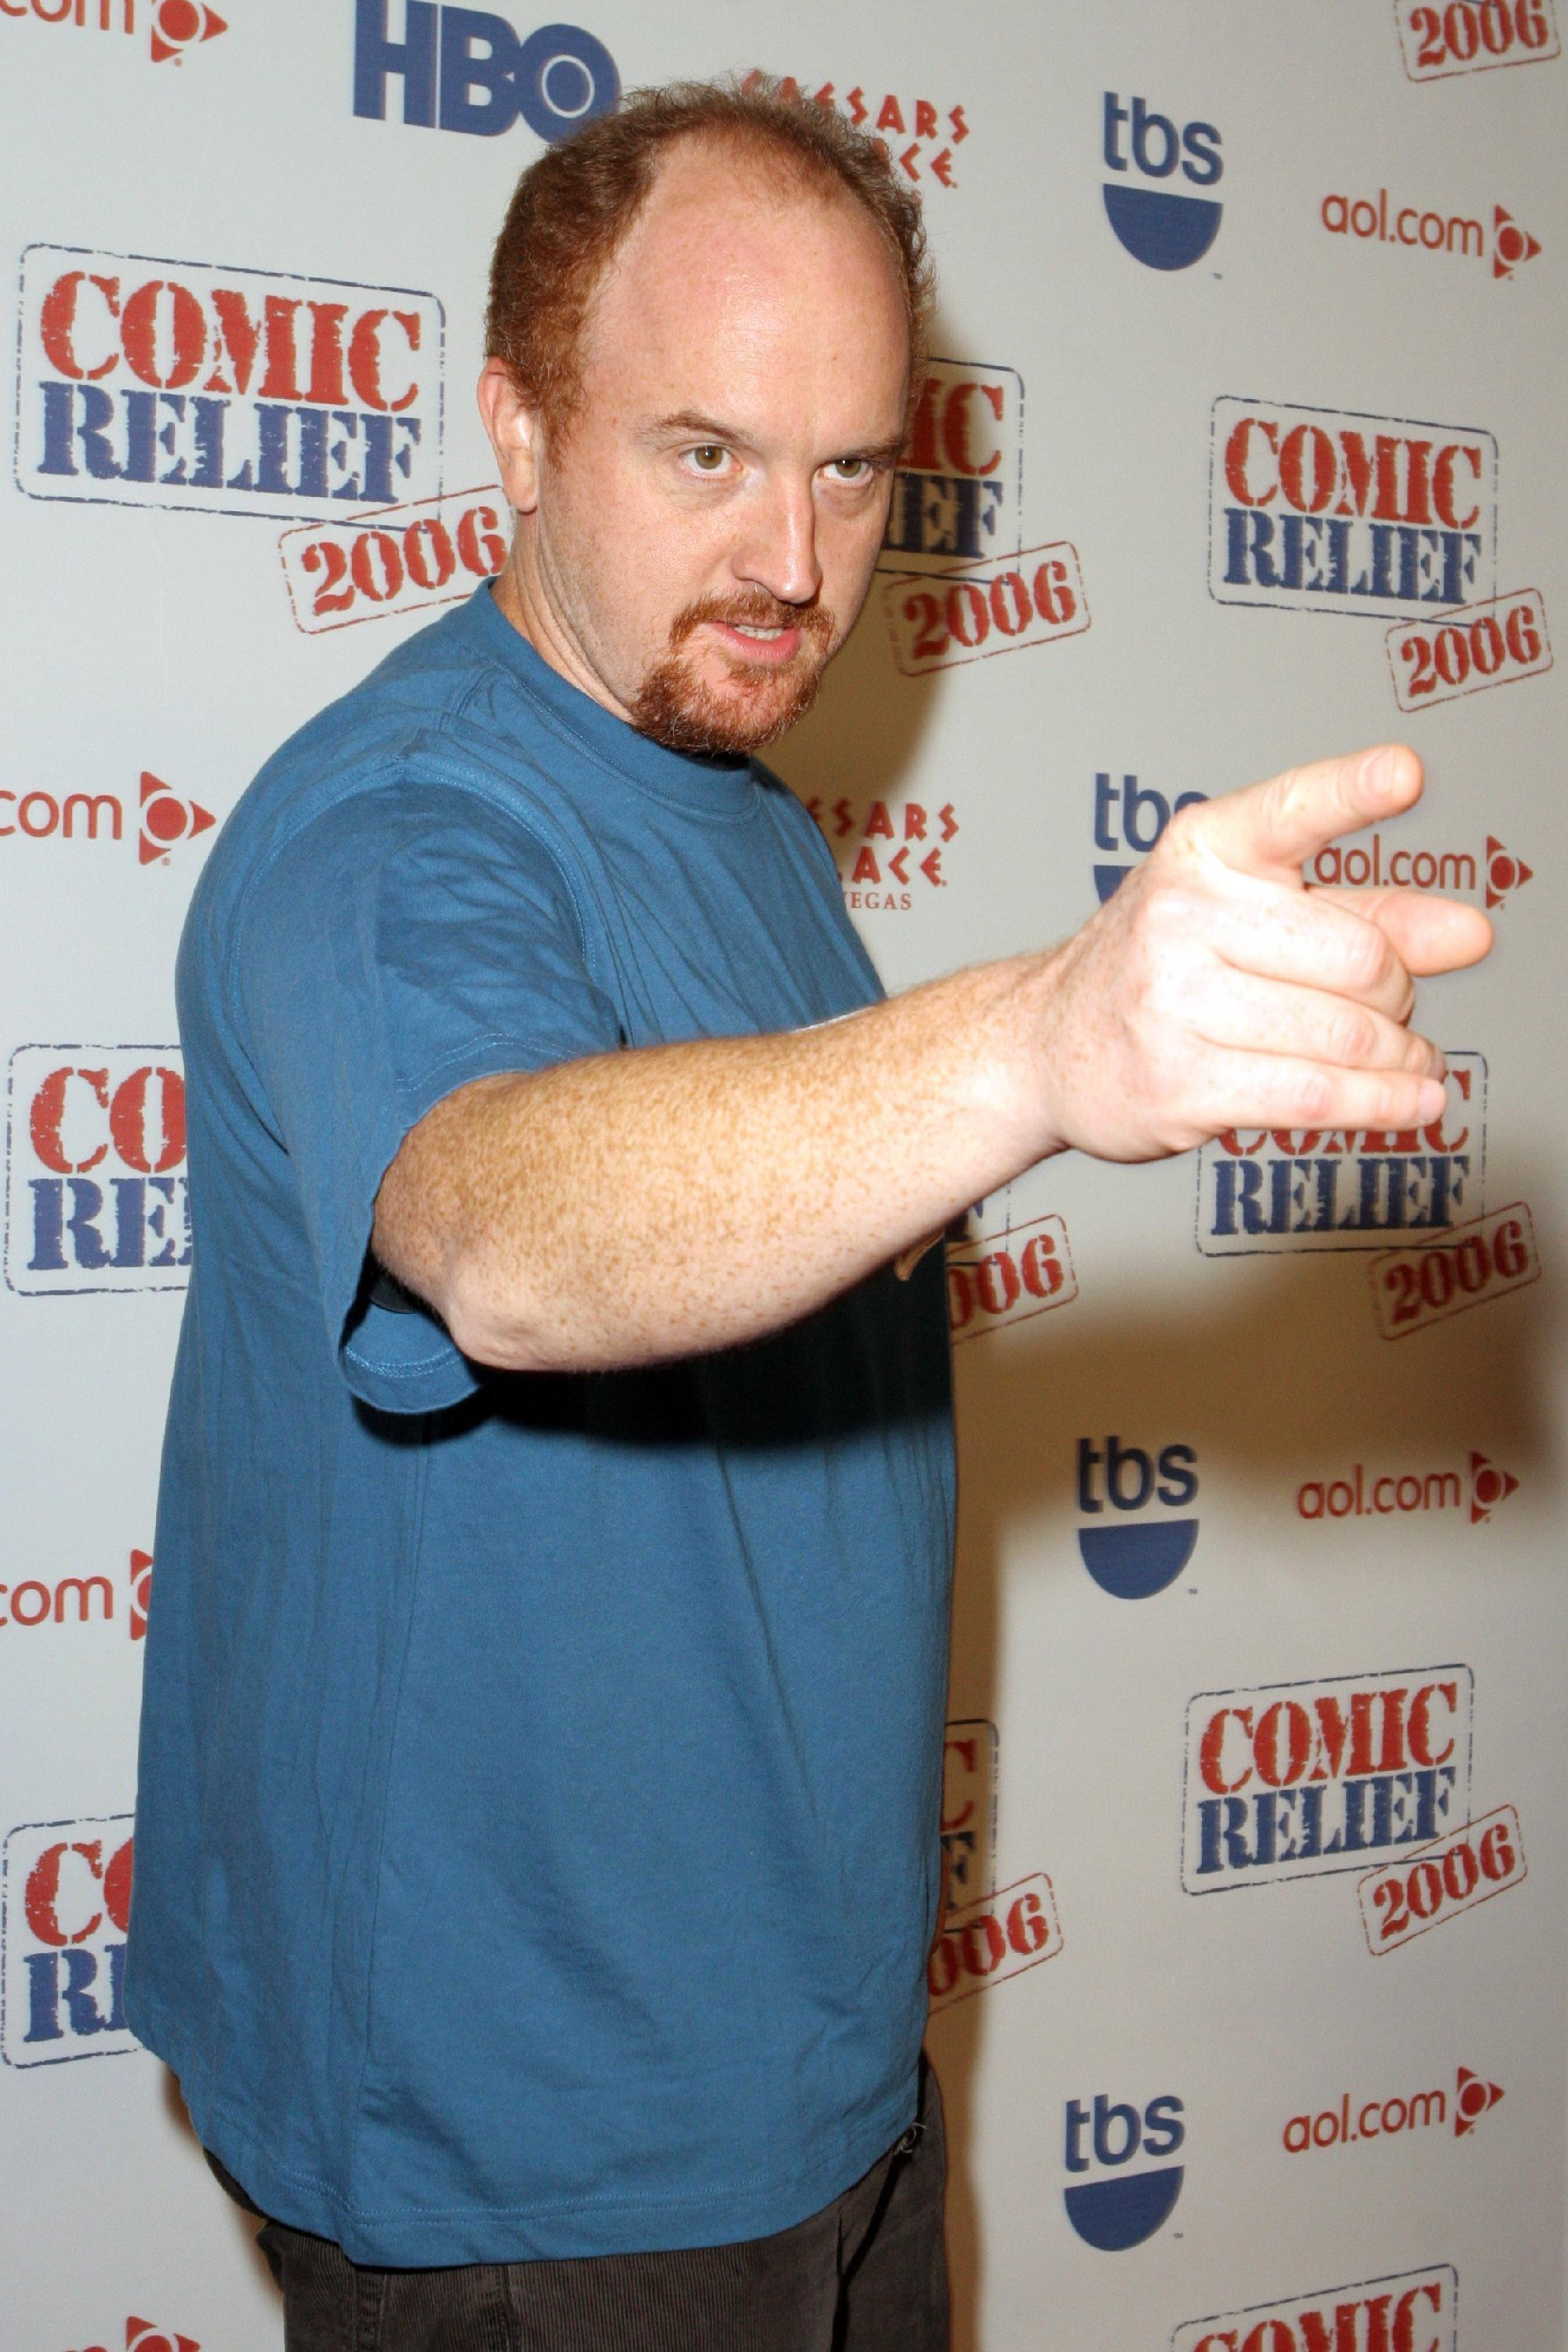 Louis C K at Comic Relief 2006, the live all-star comedy event to help families affected by Hurricane Katrina at Caesars Palace Las Vegas, Nevada - 18.11.06  Featuring: Louis C K Where: United States When: 18 Nov 2006 Credit: Judy Eddy / WENN